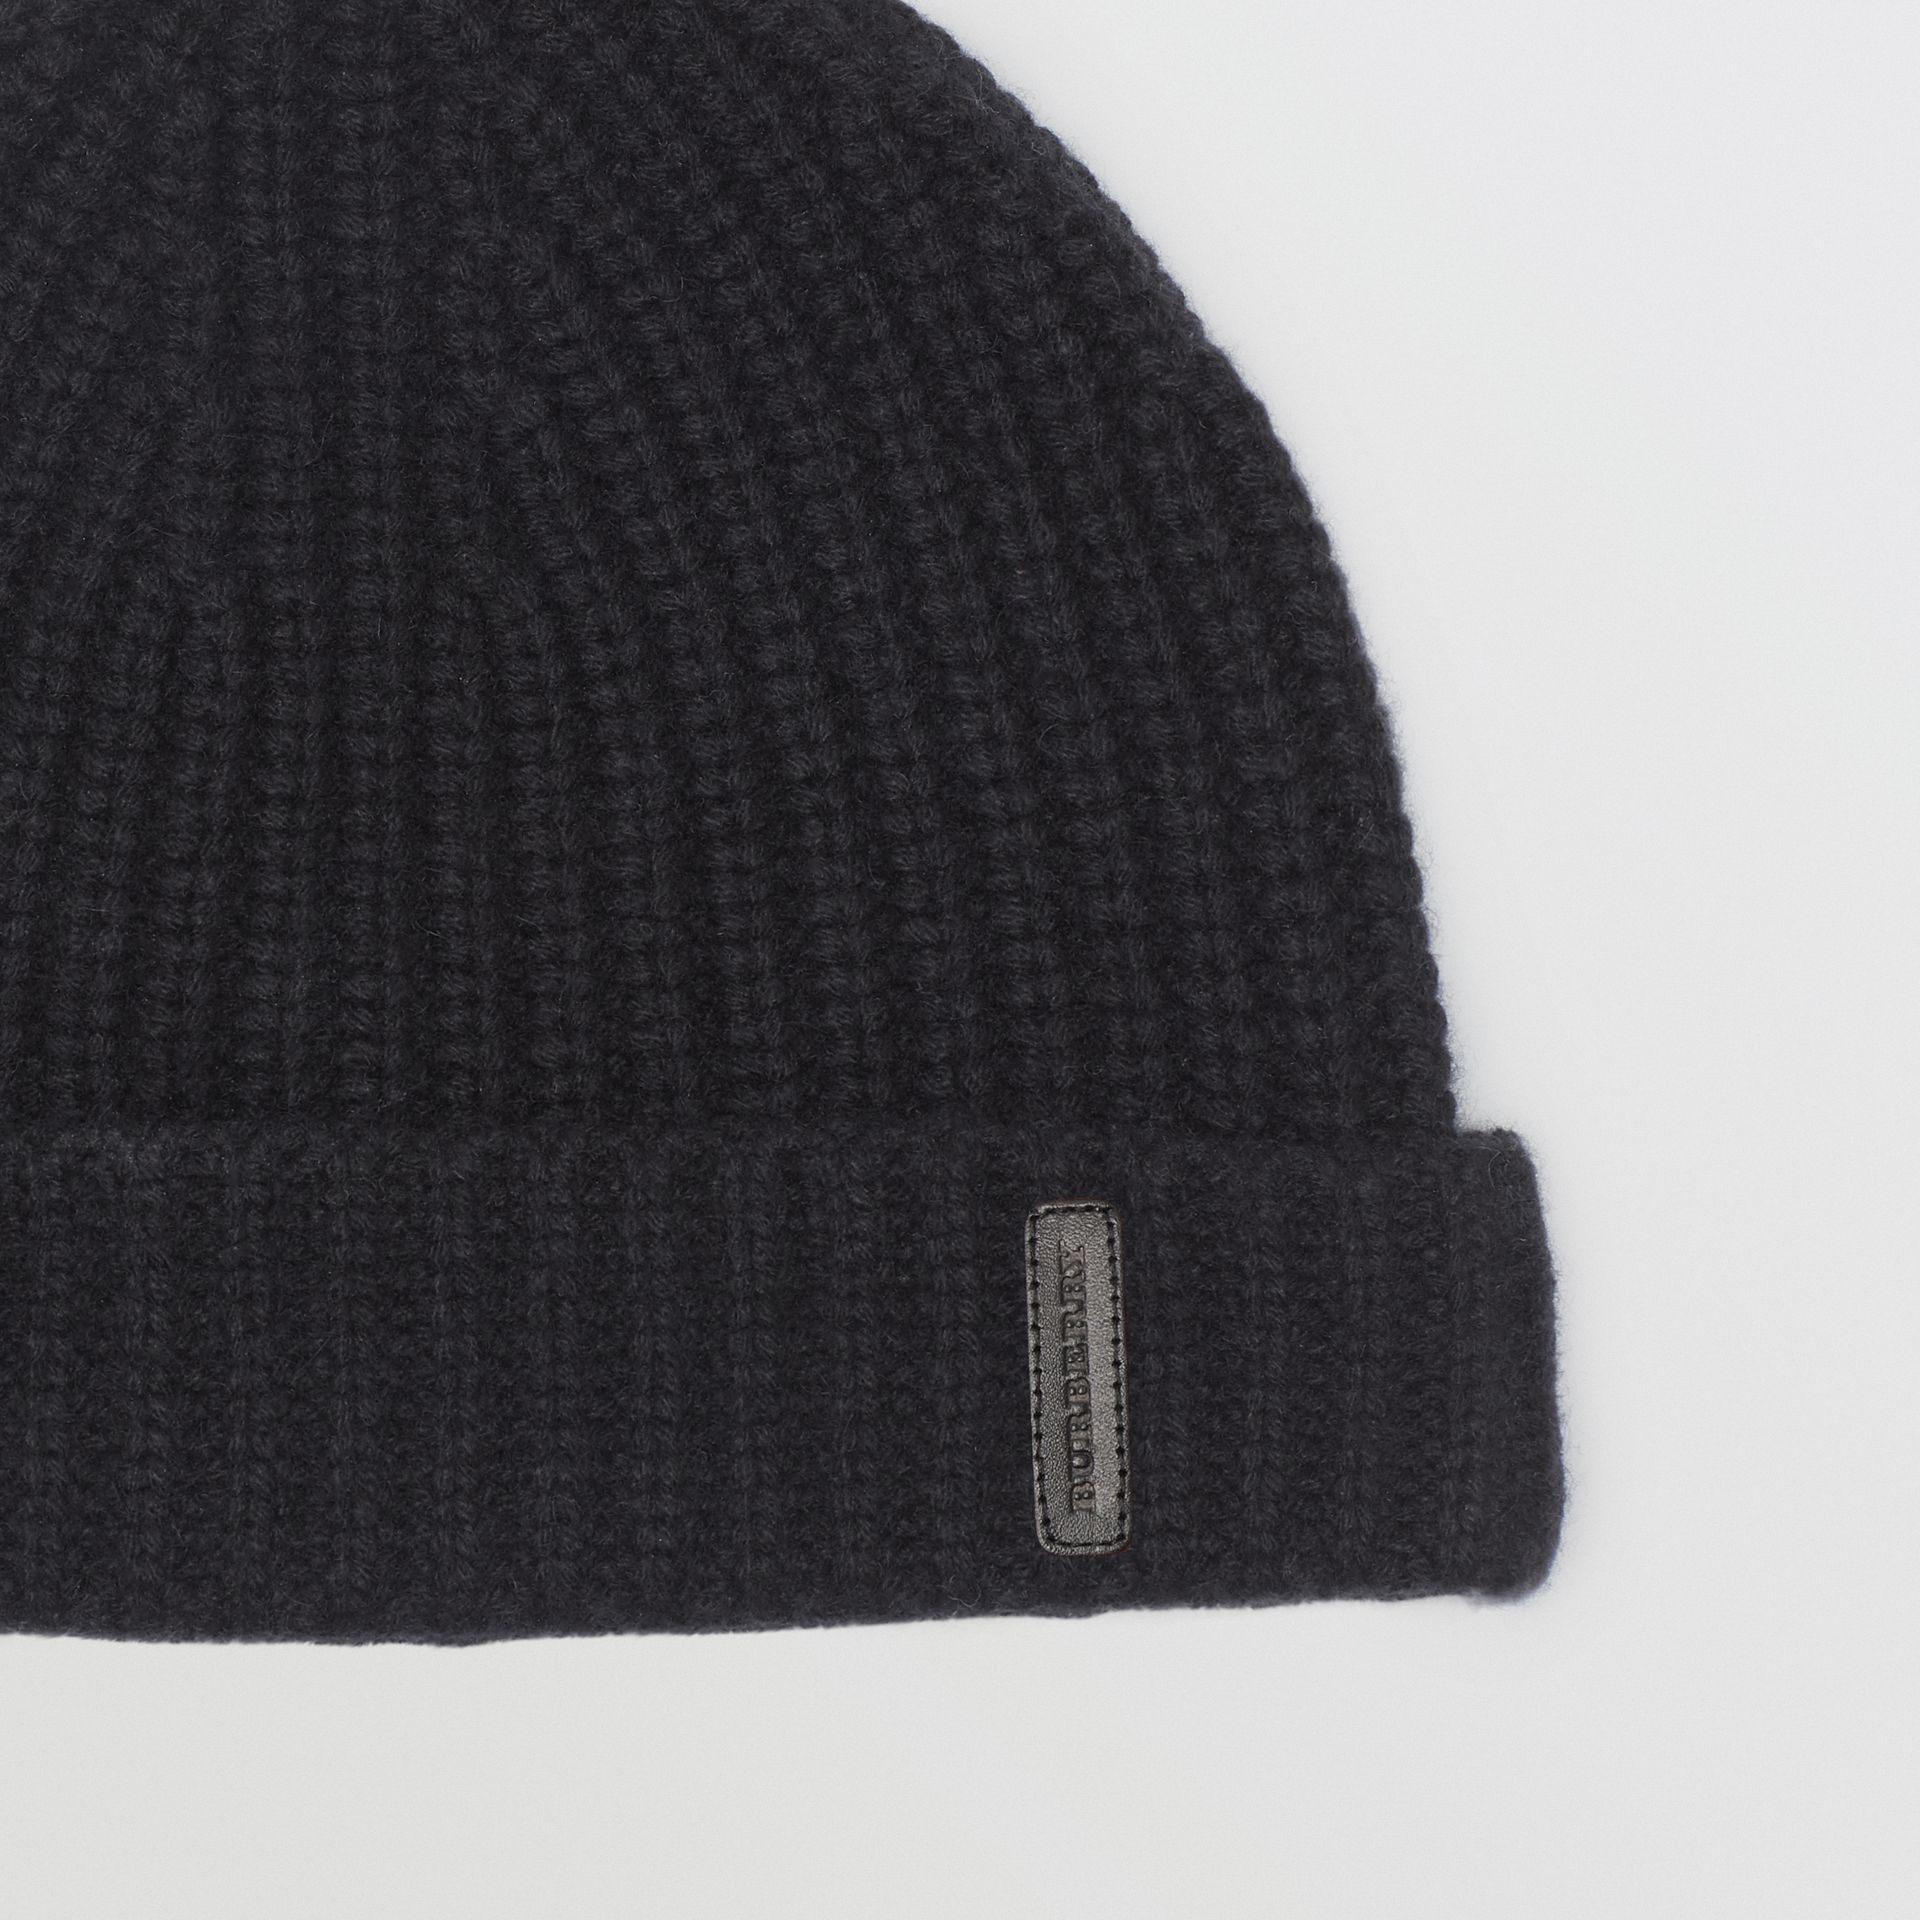 Rib Knit Cashmere Beanie in Black | Burberry - gallery image 1